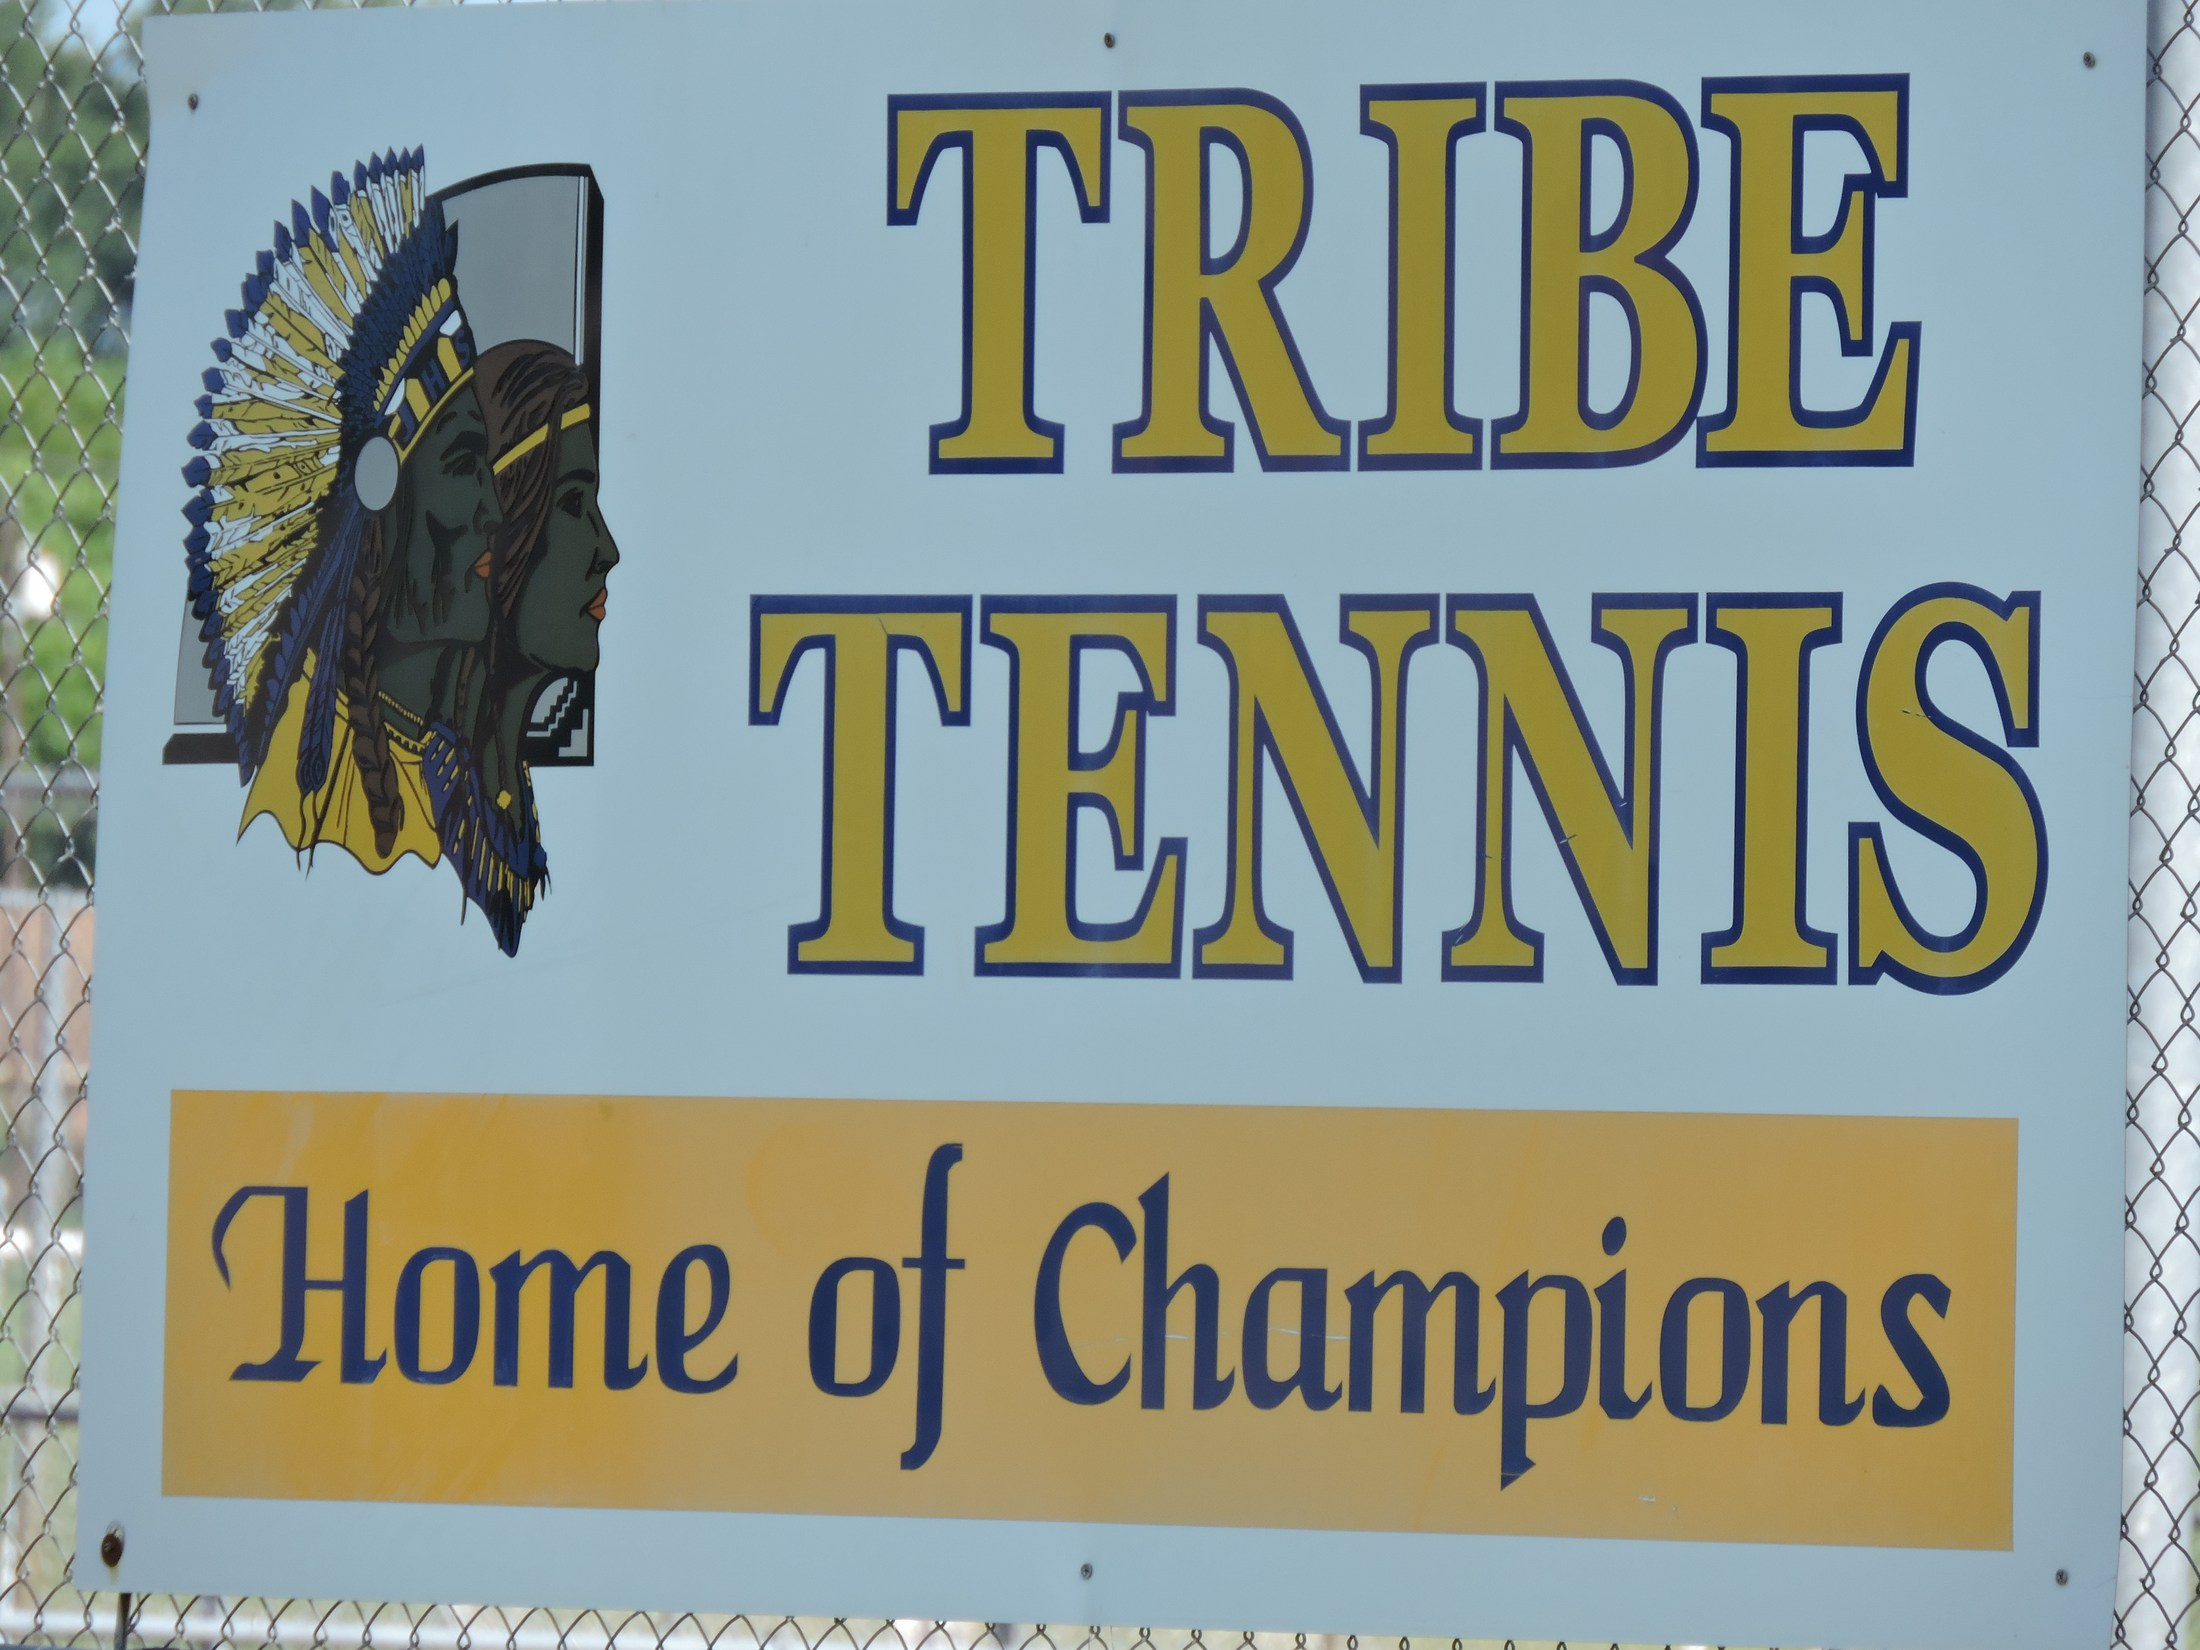 Tribe Tennis sign at the tennis courts